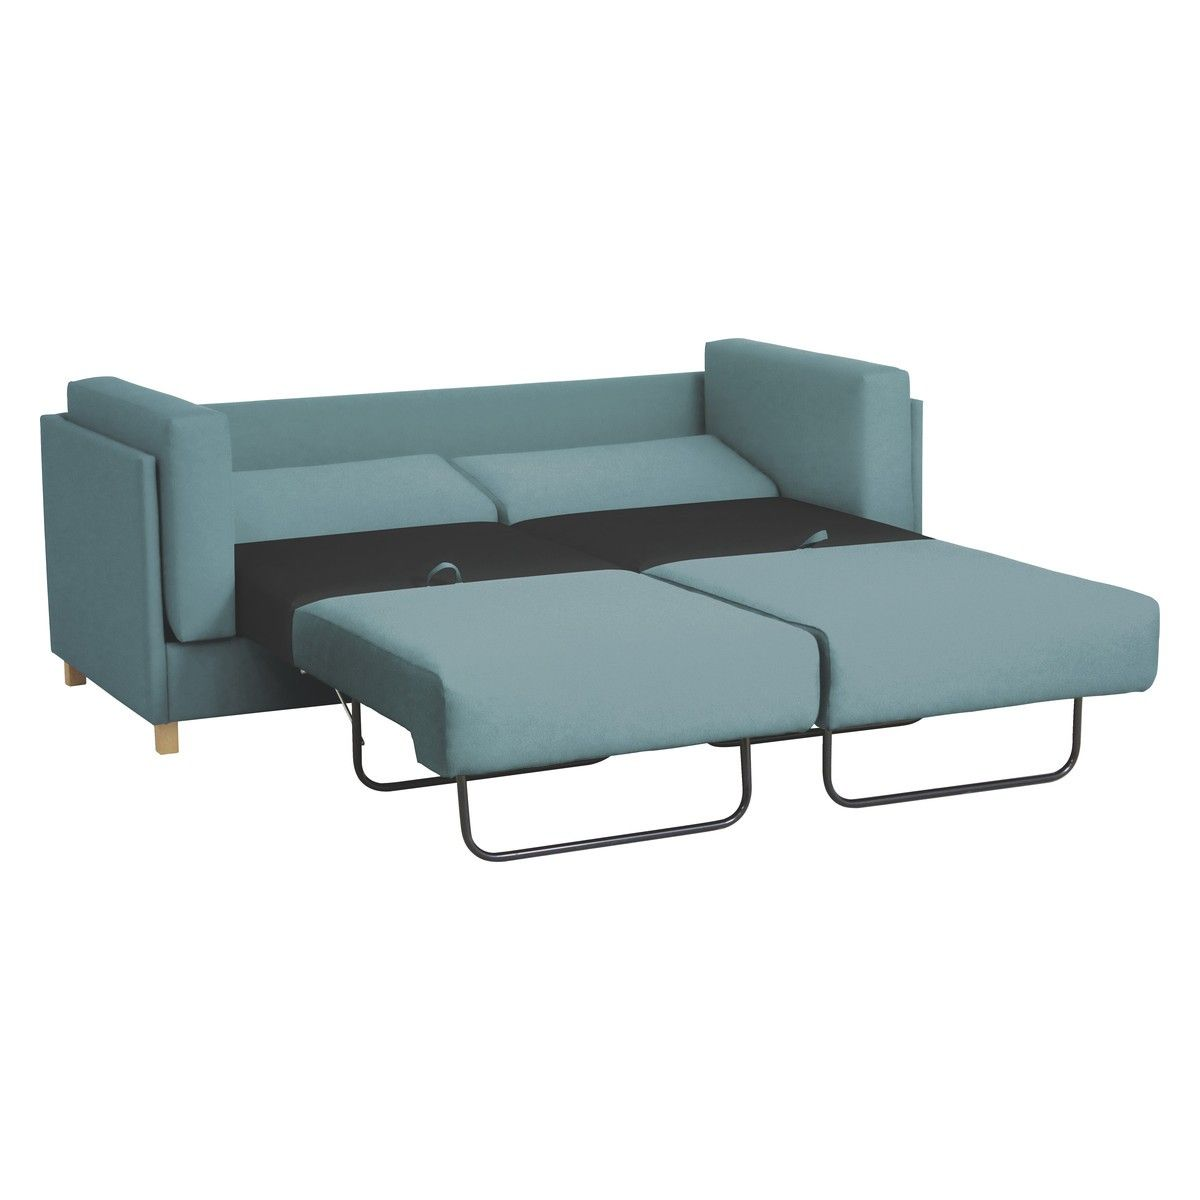 Awesome Colombo Teal Blue Fabric 3 Seater Sofa Bed 3 Seater Sofa Caraccident5 Cool Chair Designs And Ideas Caraccident5Info